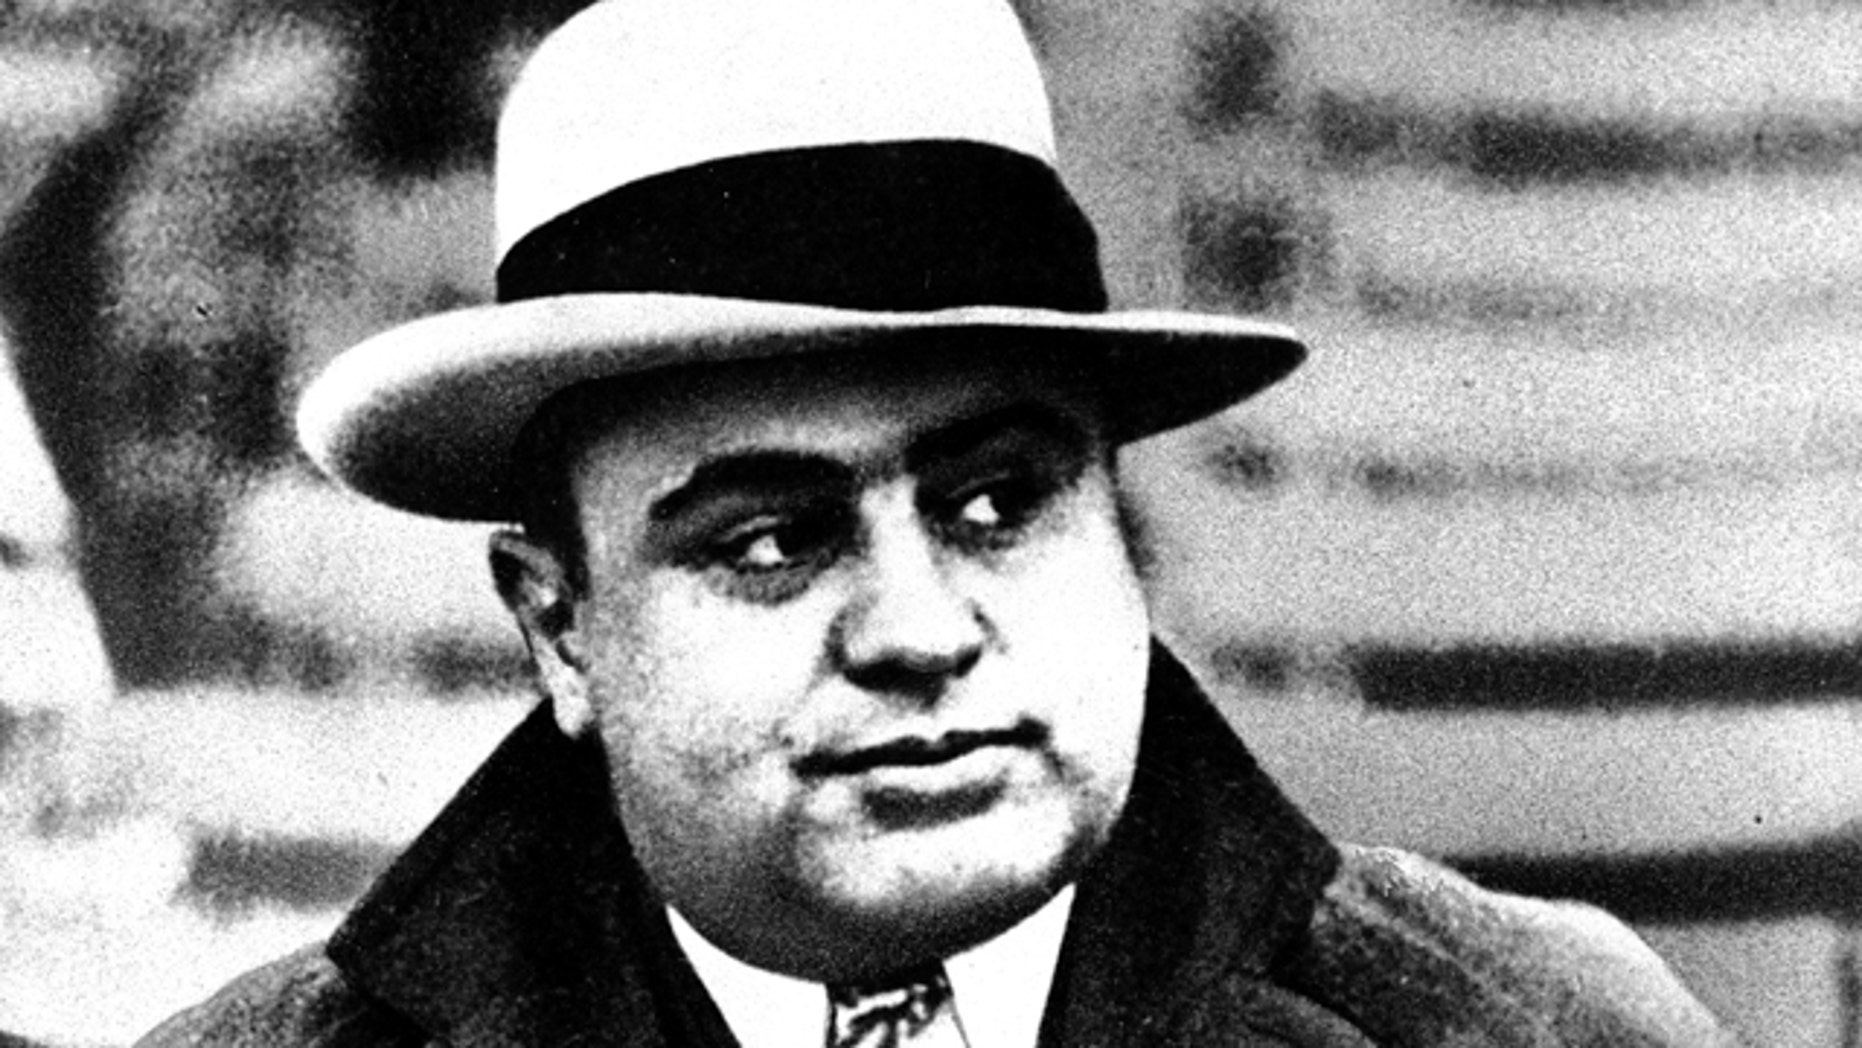 Al Capone was widely thought to have ordered the St. Valentine's Day Massacre hit, but the gangster was careful to make sure he was in Florida when the killing started.